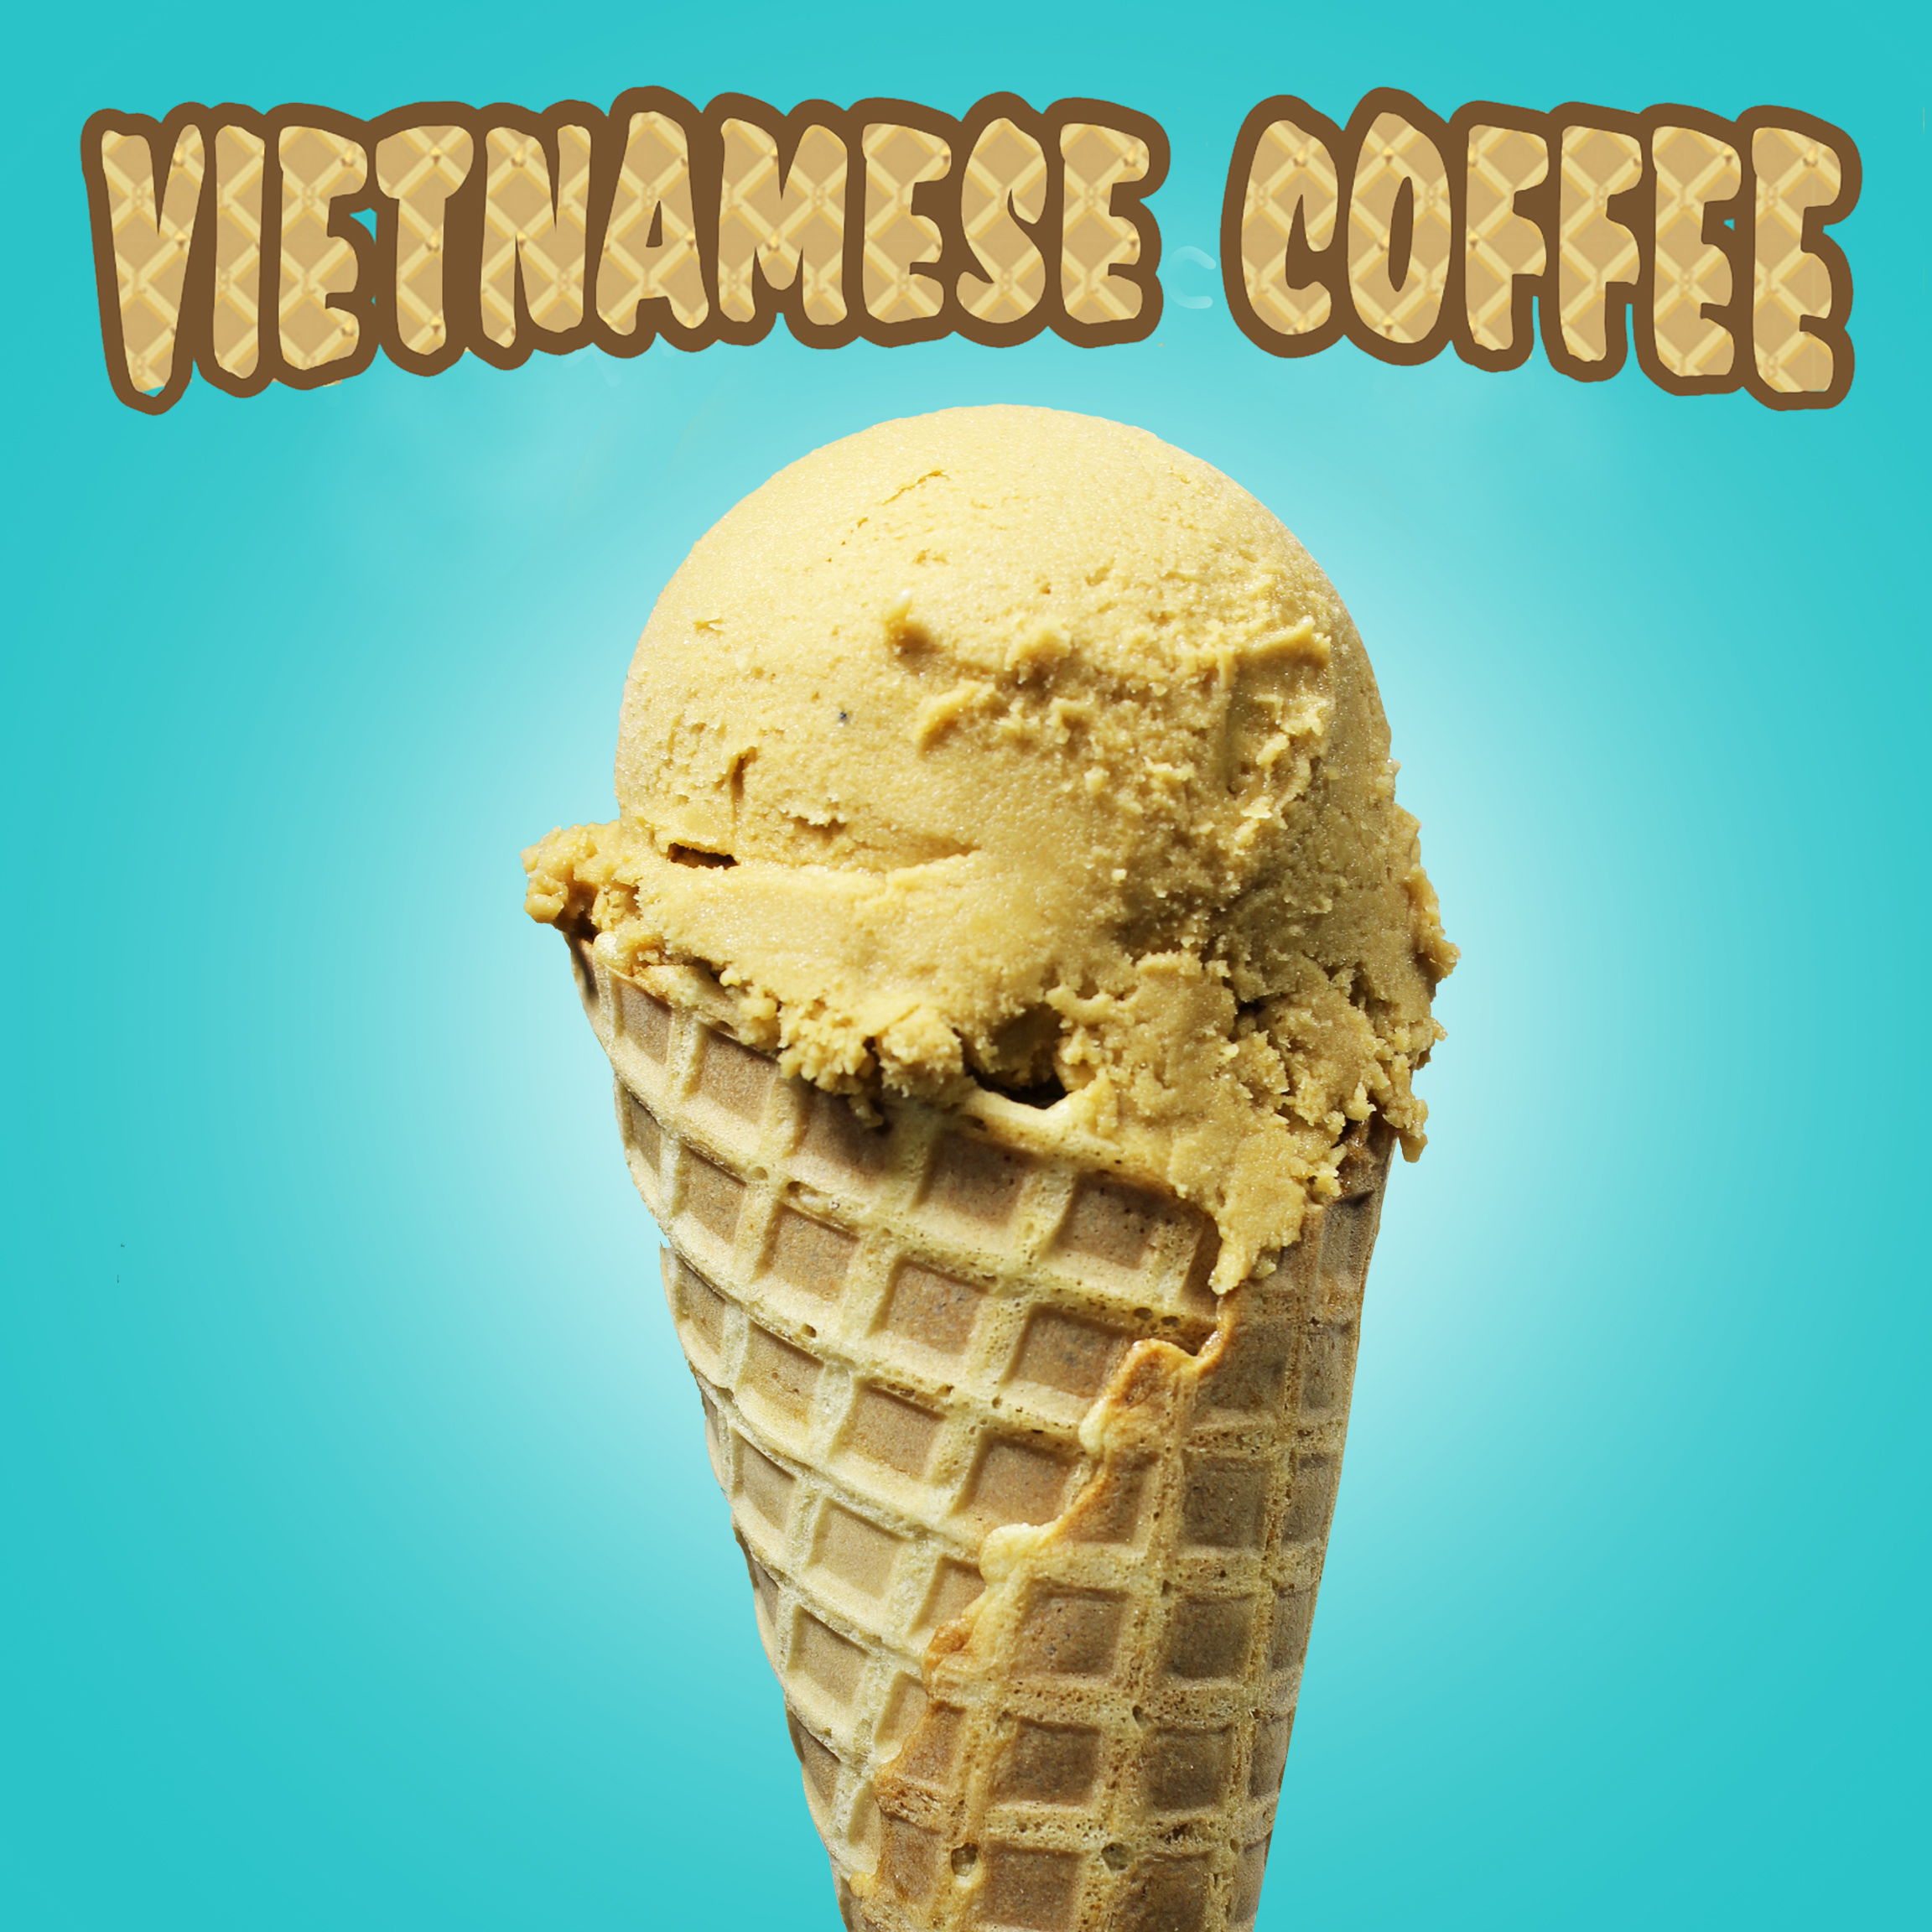 Premium Vietnamese coffee (gluten and nut-free)